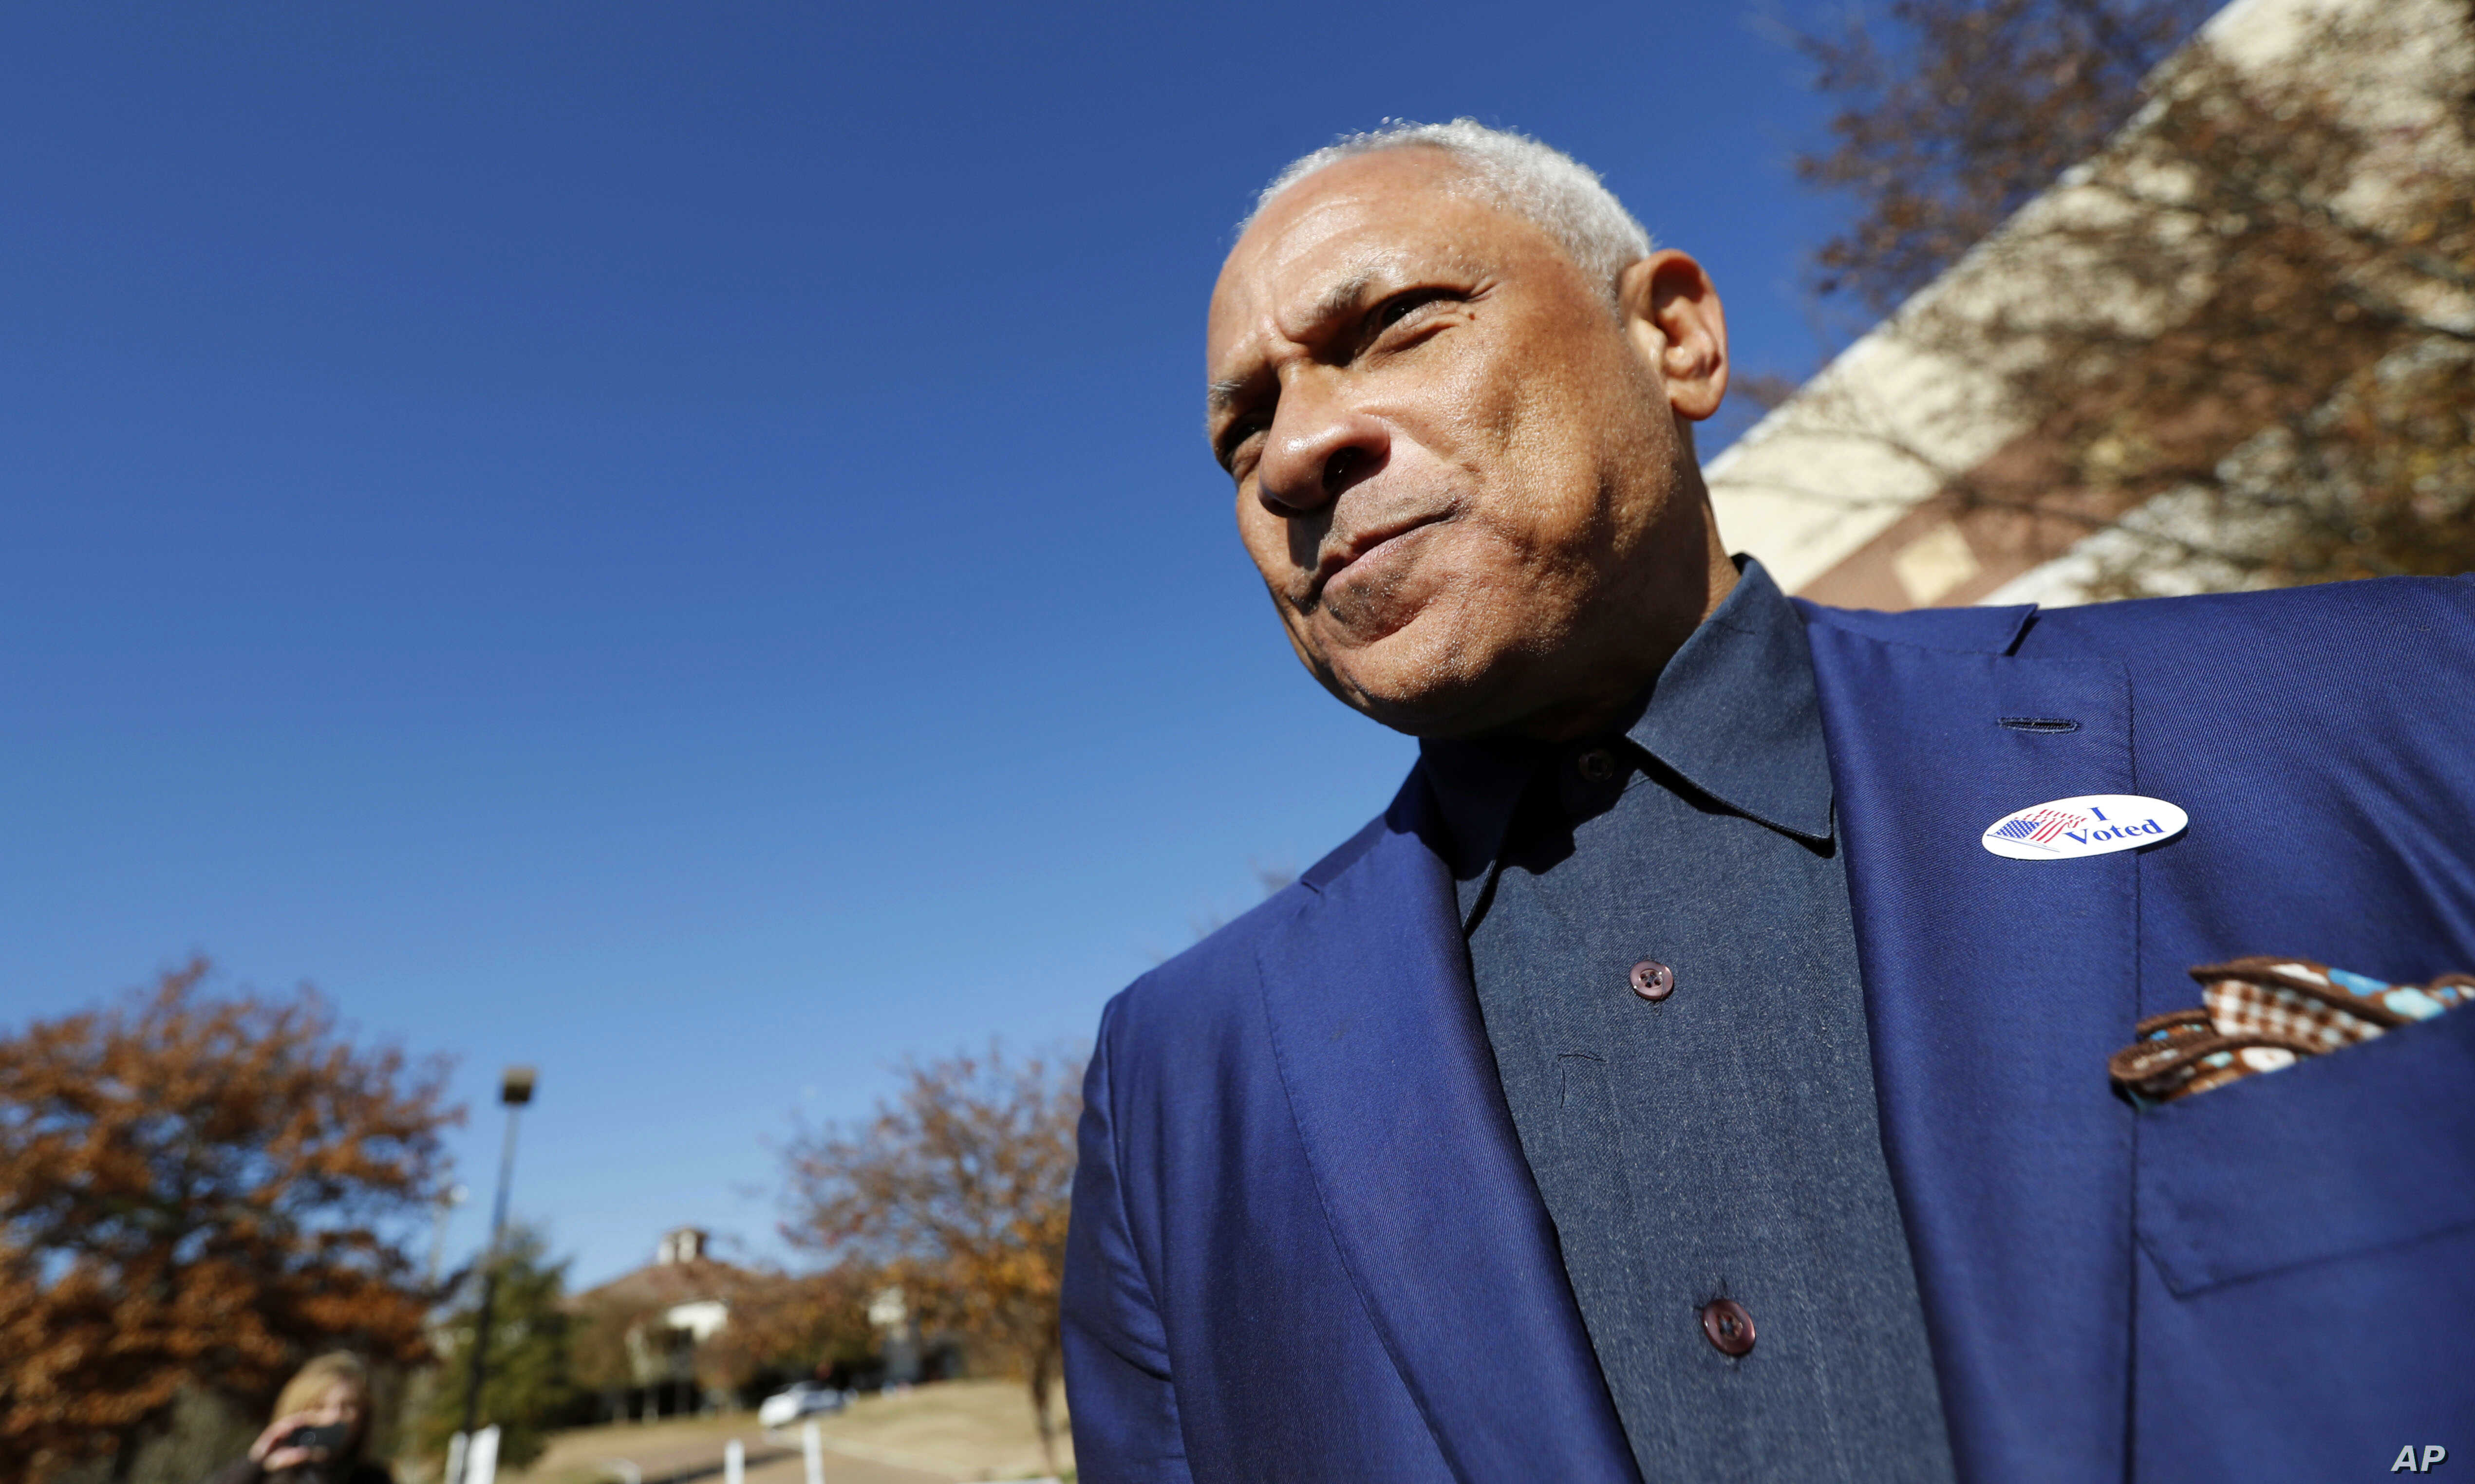 Democrat Mike Espy leaves his precinct after voting in a runoff election, Nov. 27, 2018 in Ridgeland, Mississippi.